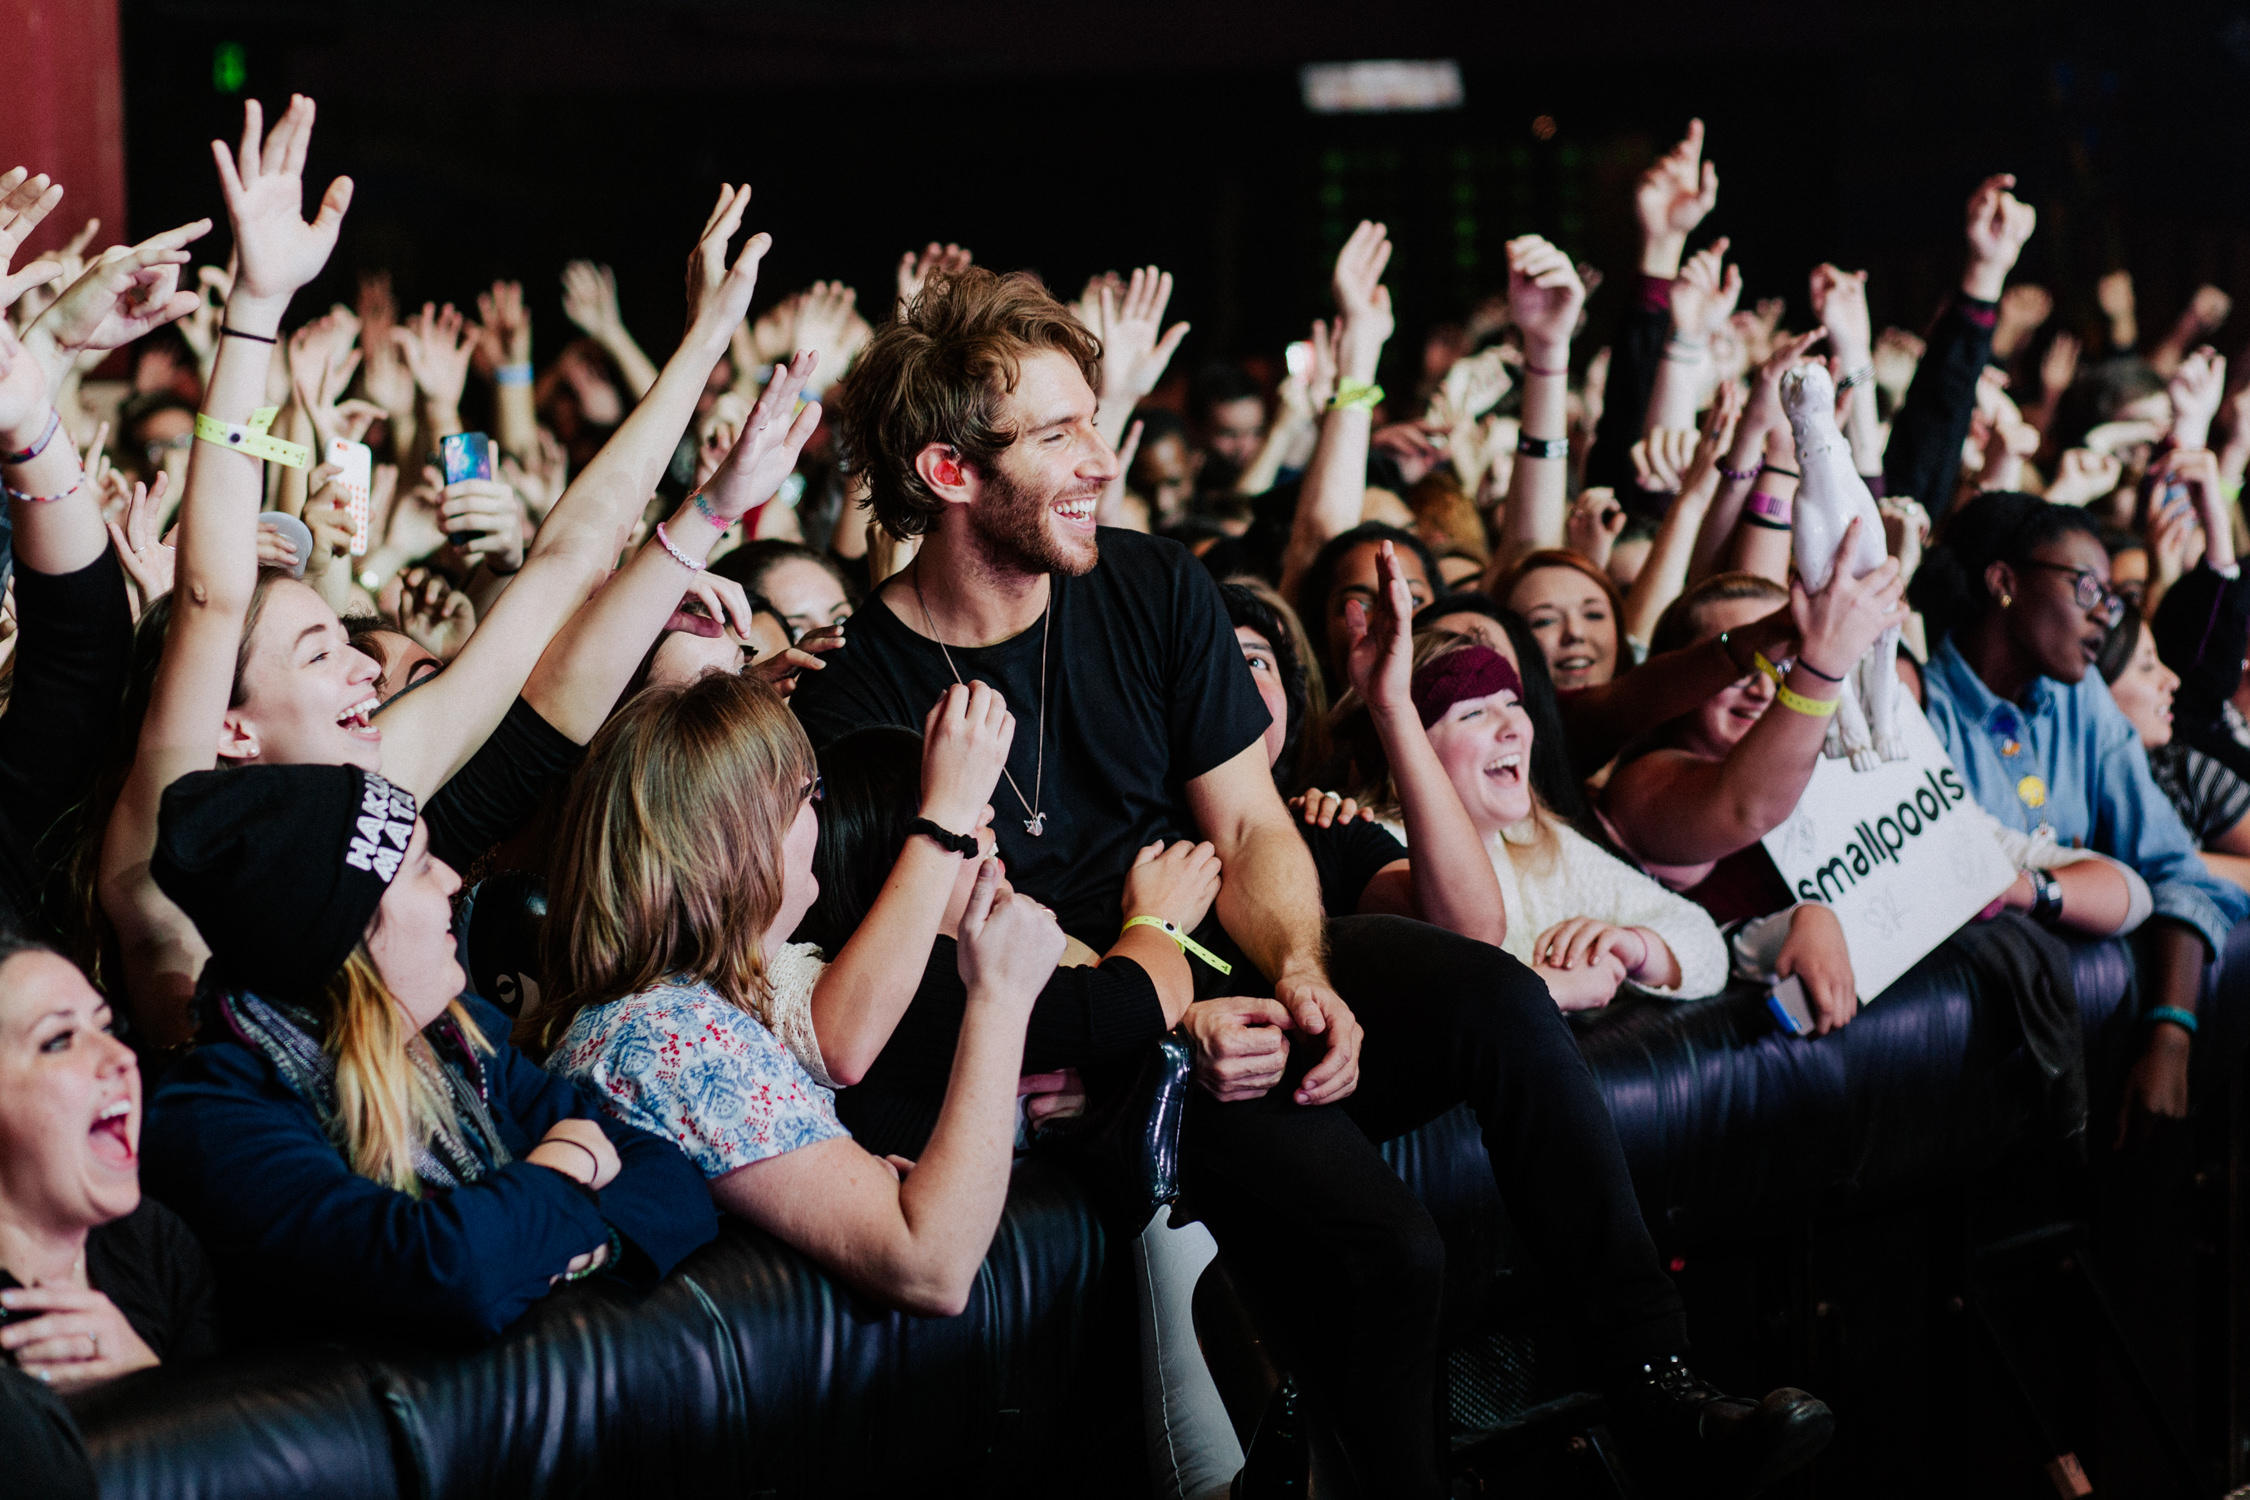 seans-smallpools-singer-concert-front-row-crowd-AnnaLeeMedia